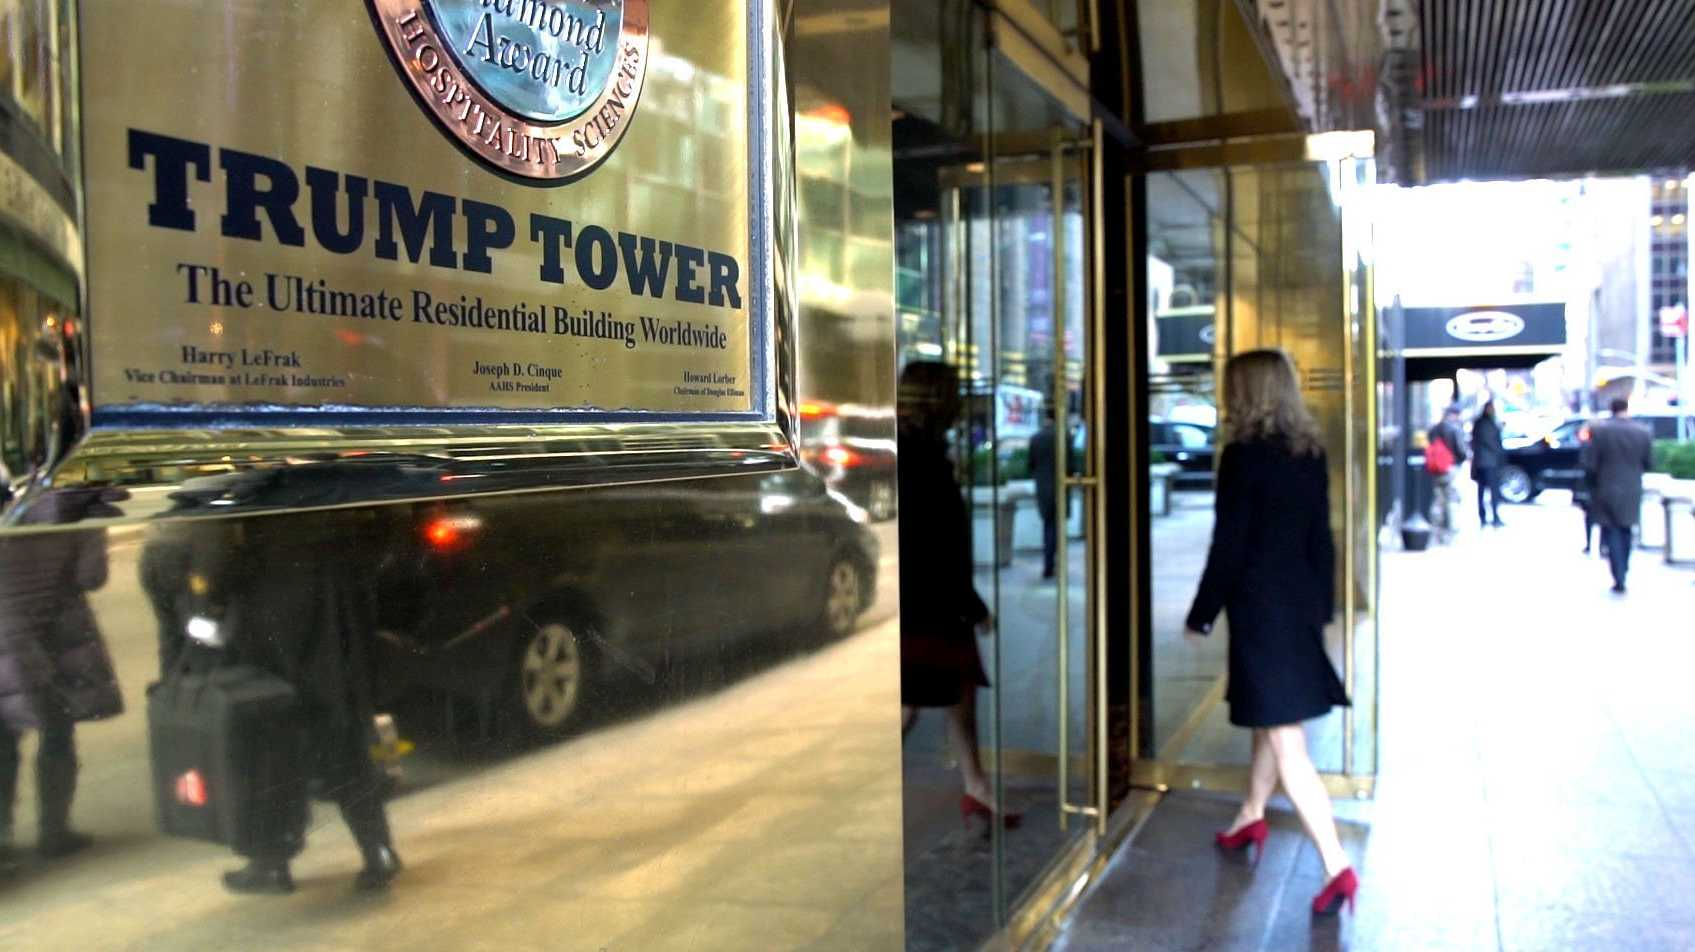 Trump Tower shown in 2016.